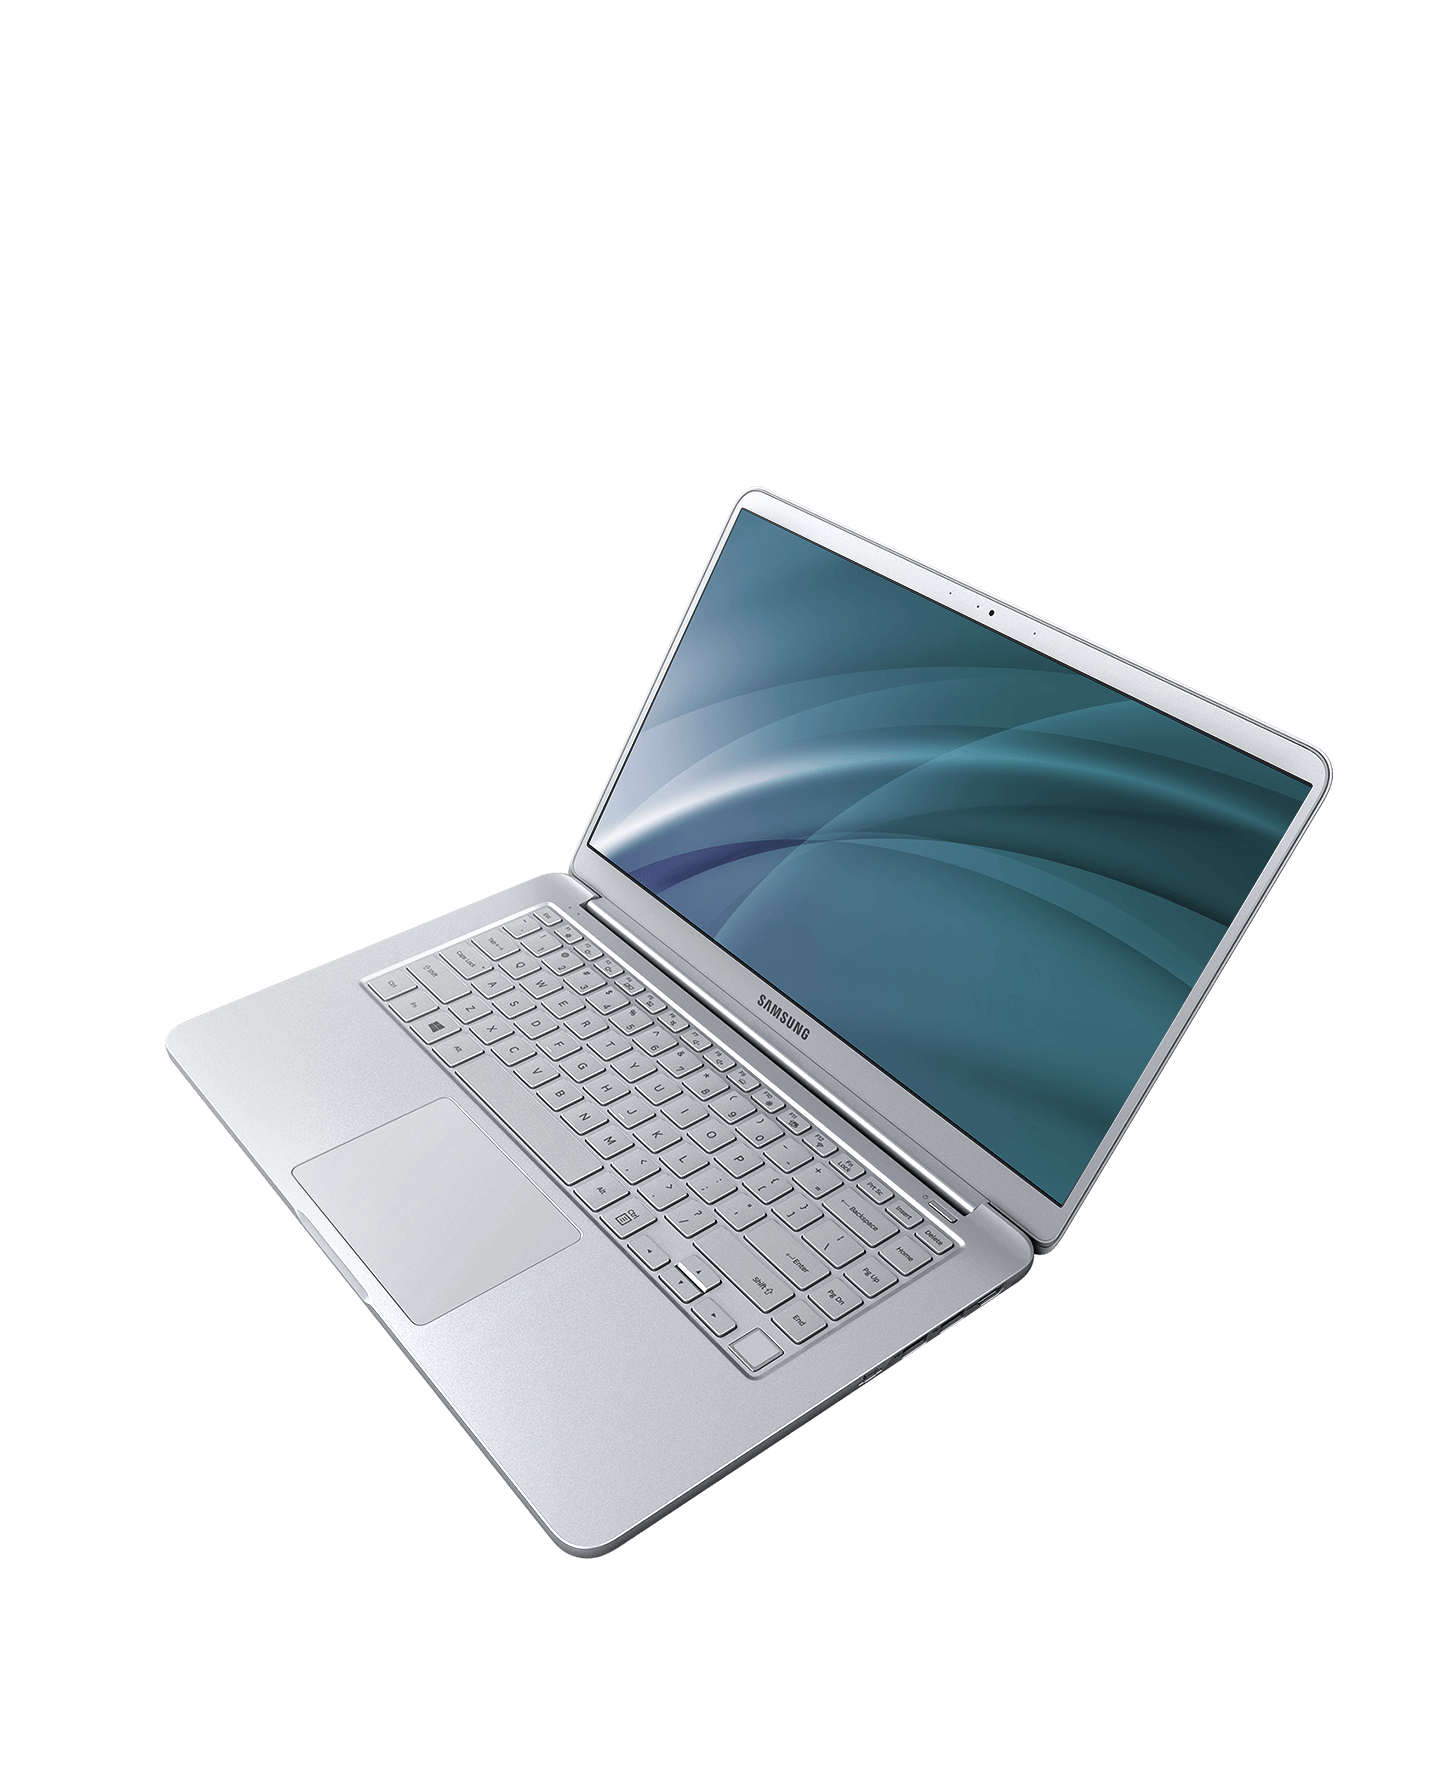 An image showing the notebook 9's thickness from 14.9mm and its weight: 2.17lbs or 980g and An image showing a silver and white Notebook 9 device, suspended in mid-air to show that it is super-light